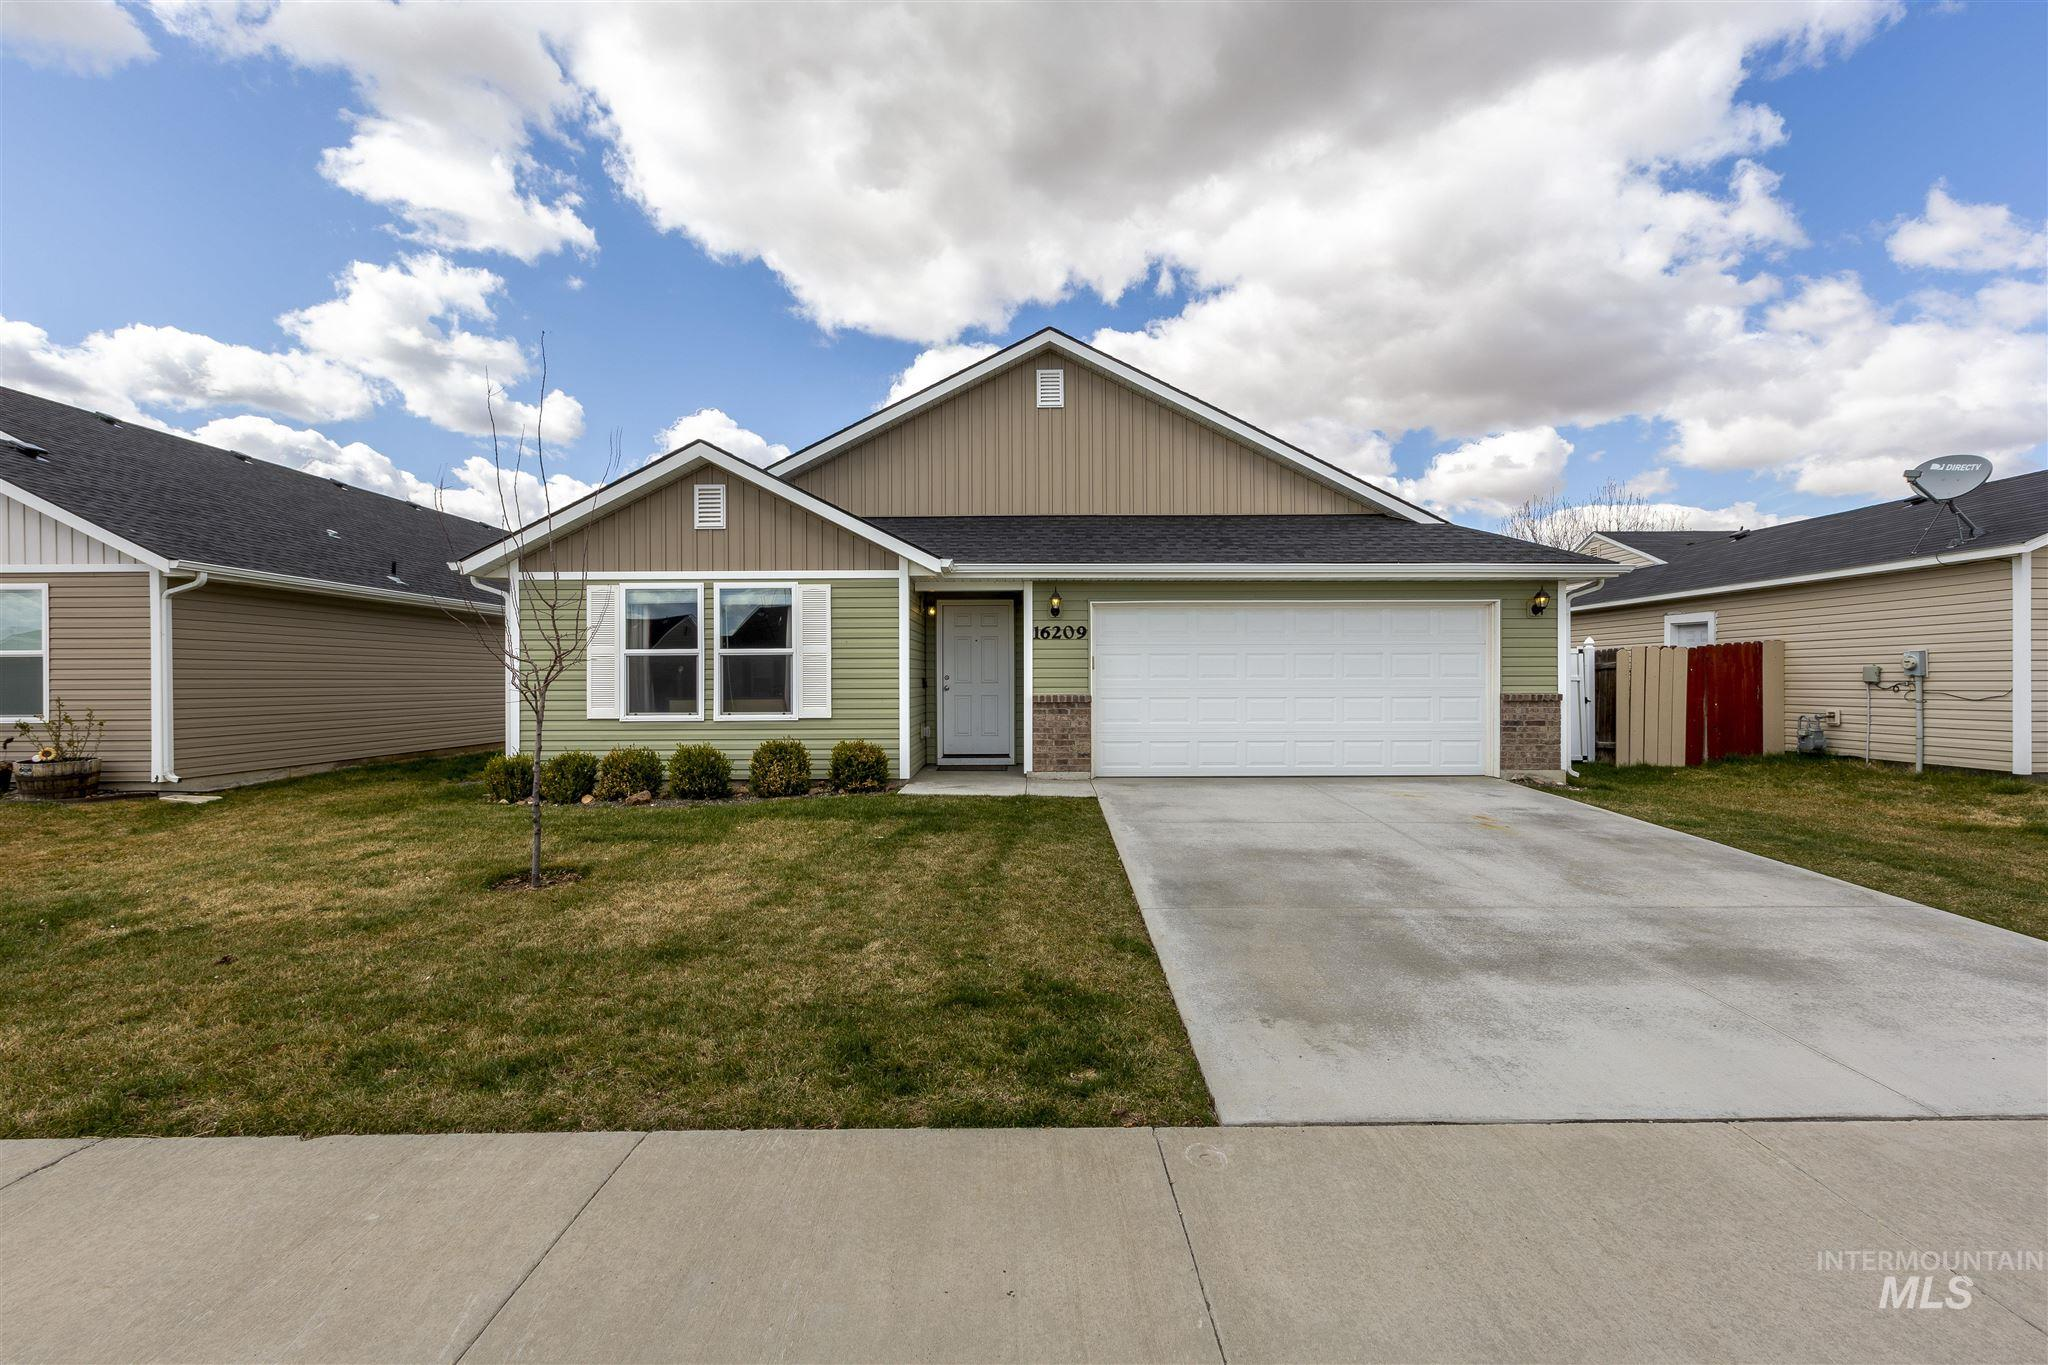 16209 Sunnyfield Ave Property Photo - Caldwell, ID real estate listing